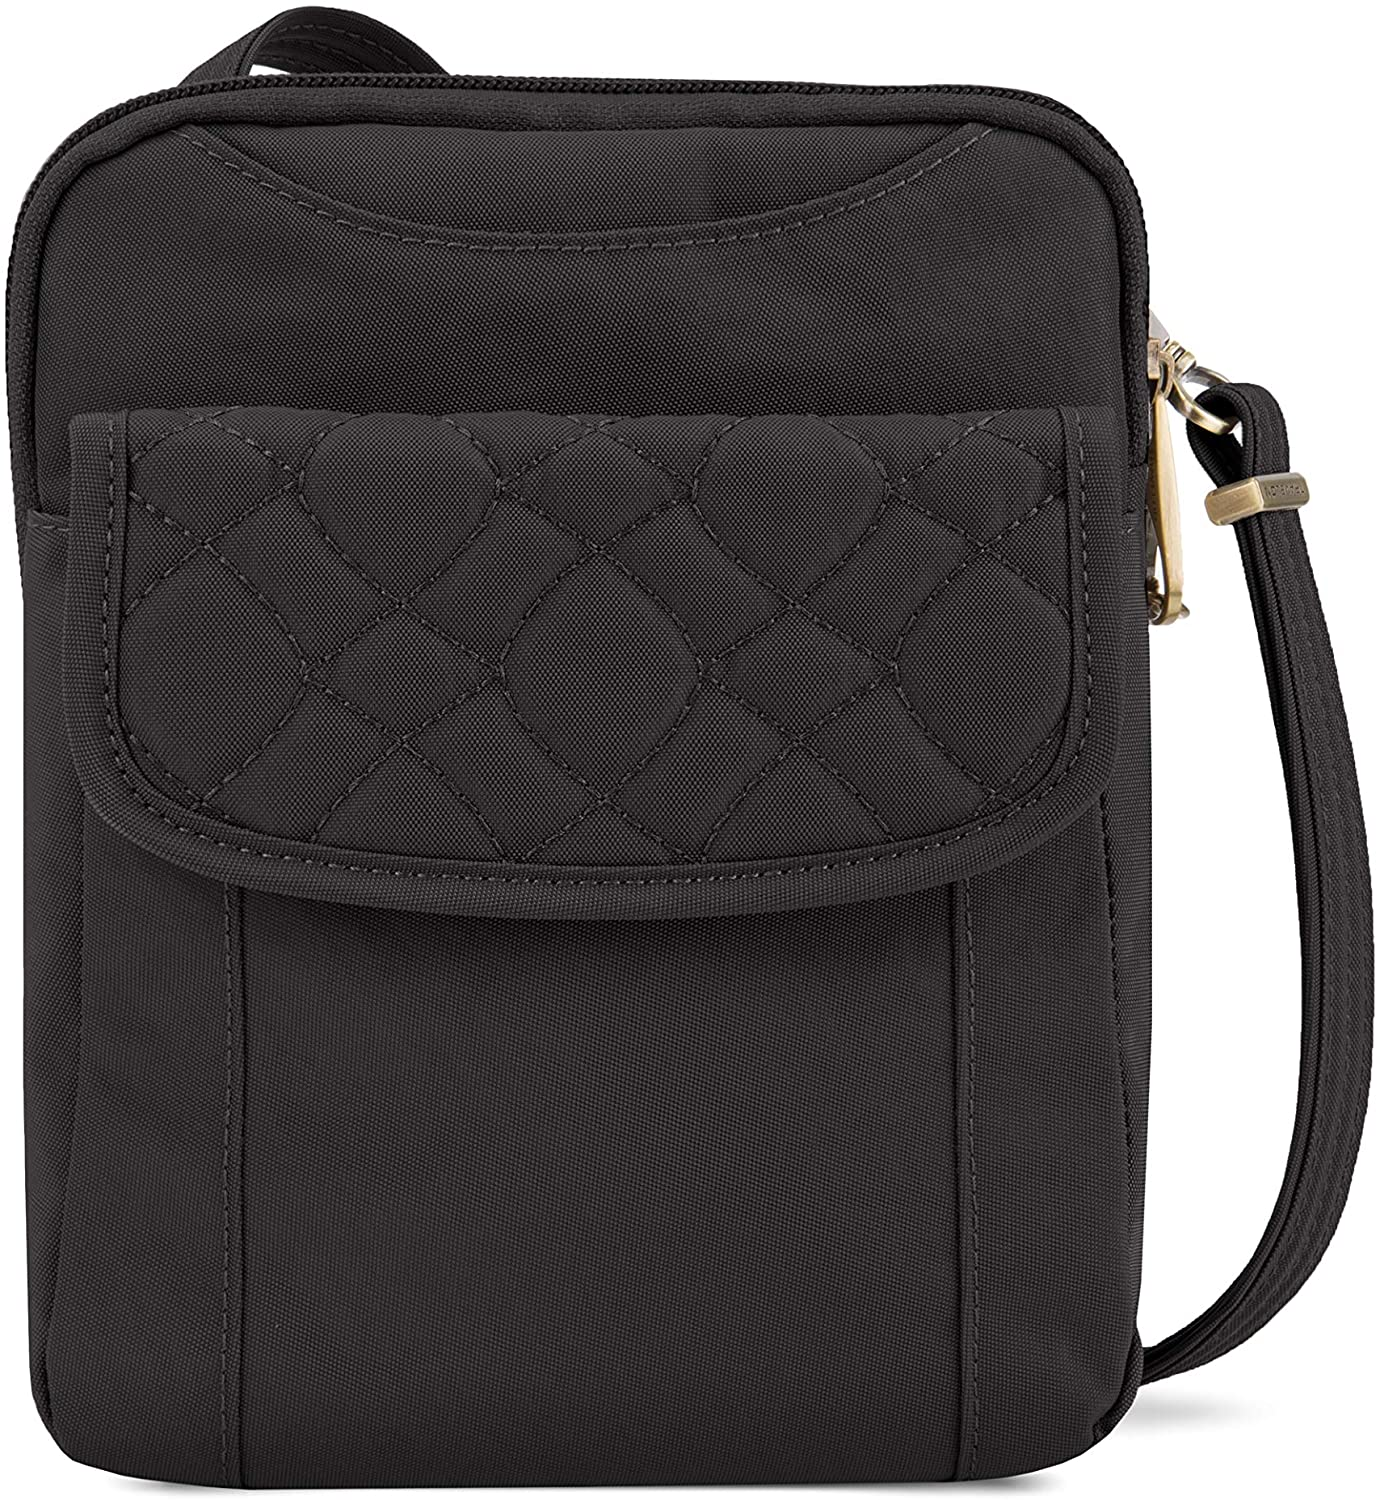 Travelon Anti-Theft Signature Quilted Slim Pouch, Black, One Size